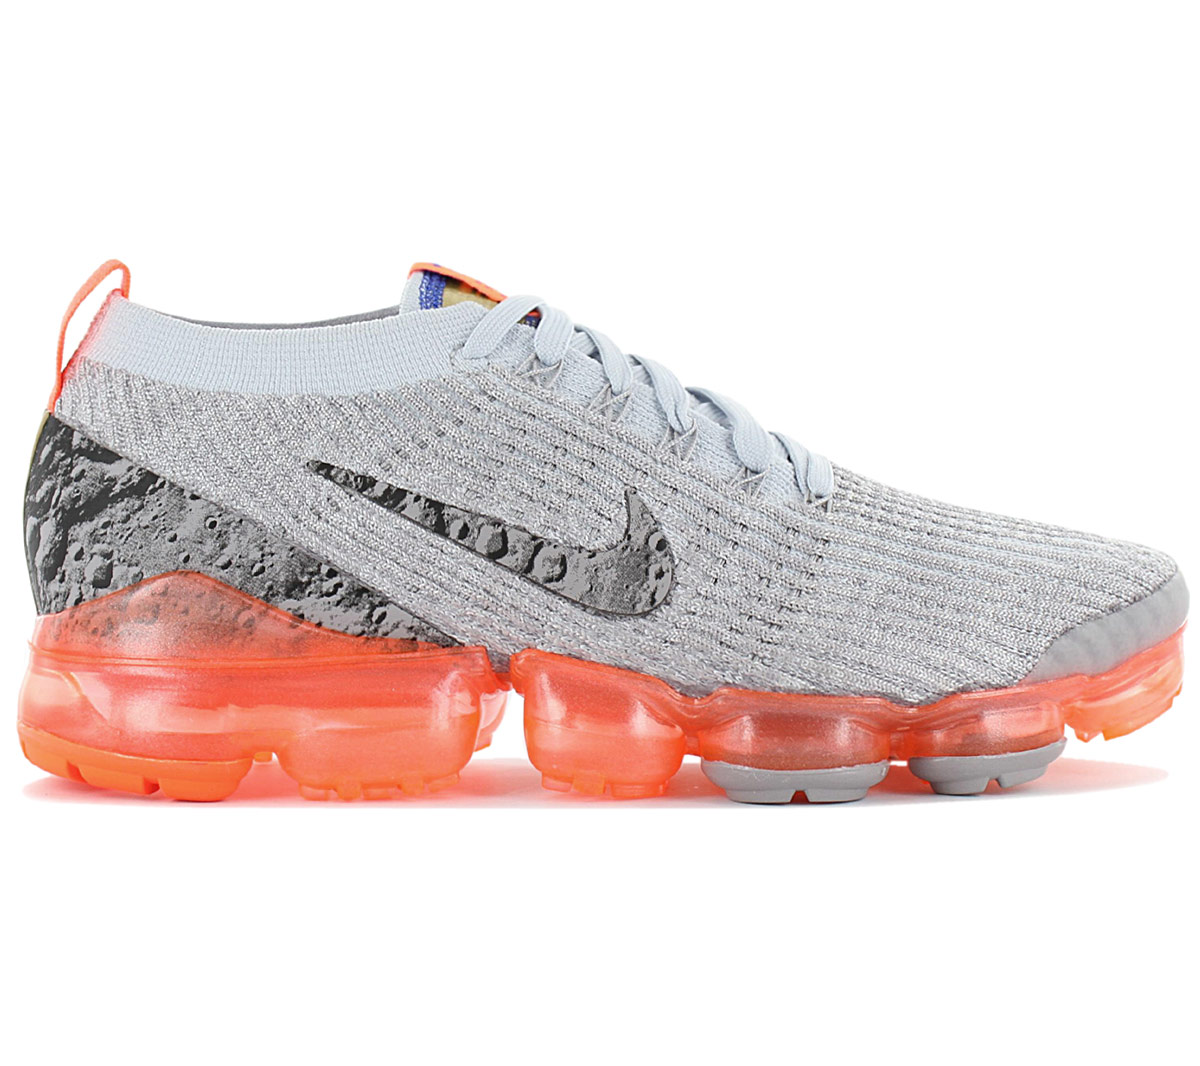 Details about Nike Air Vapormax Flyknit 3 Mens Trainer AJ6900 001 Grey Shoes Trainers New show original title